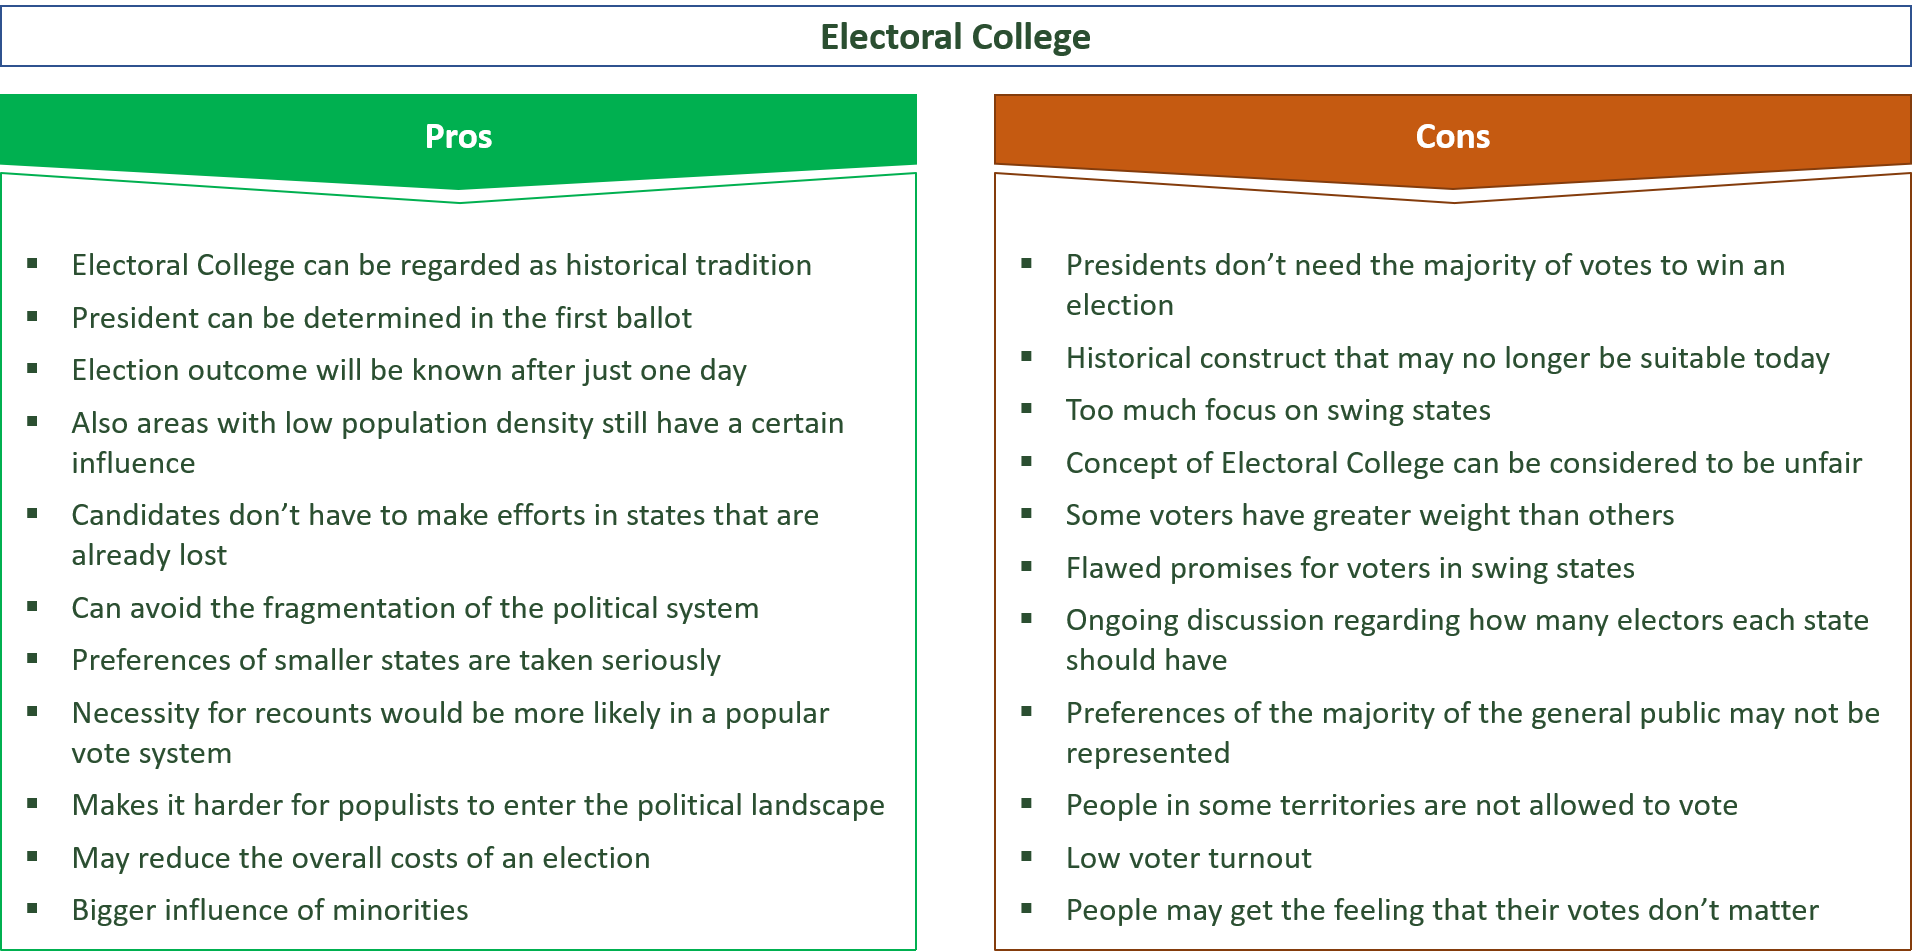 advantages and disadvantages of electoral college vs. popular vote